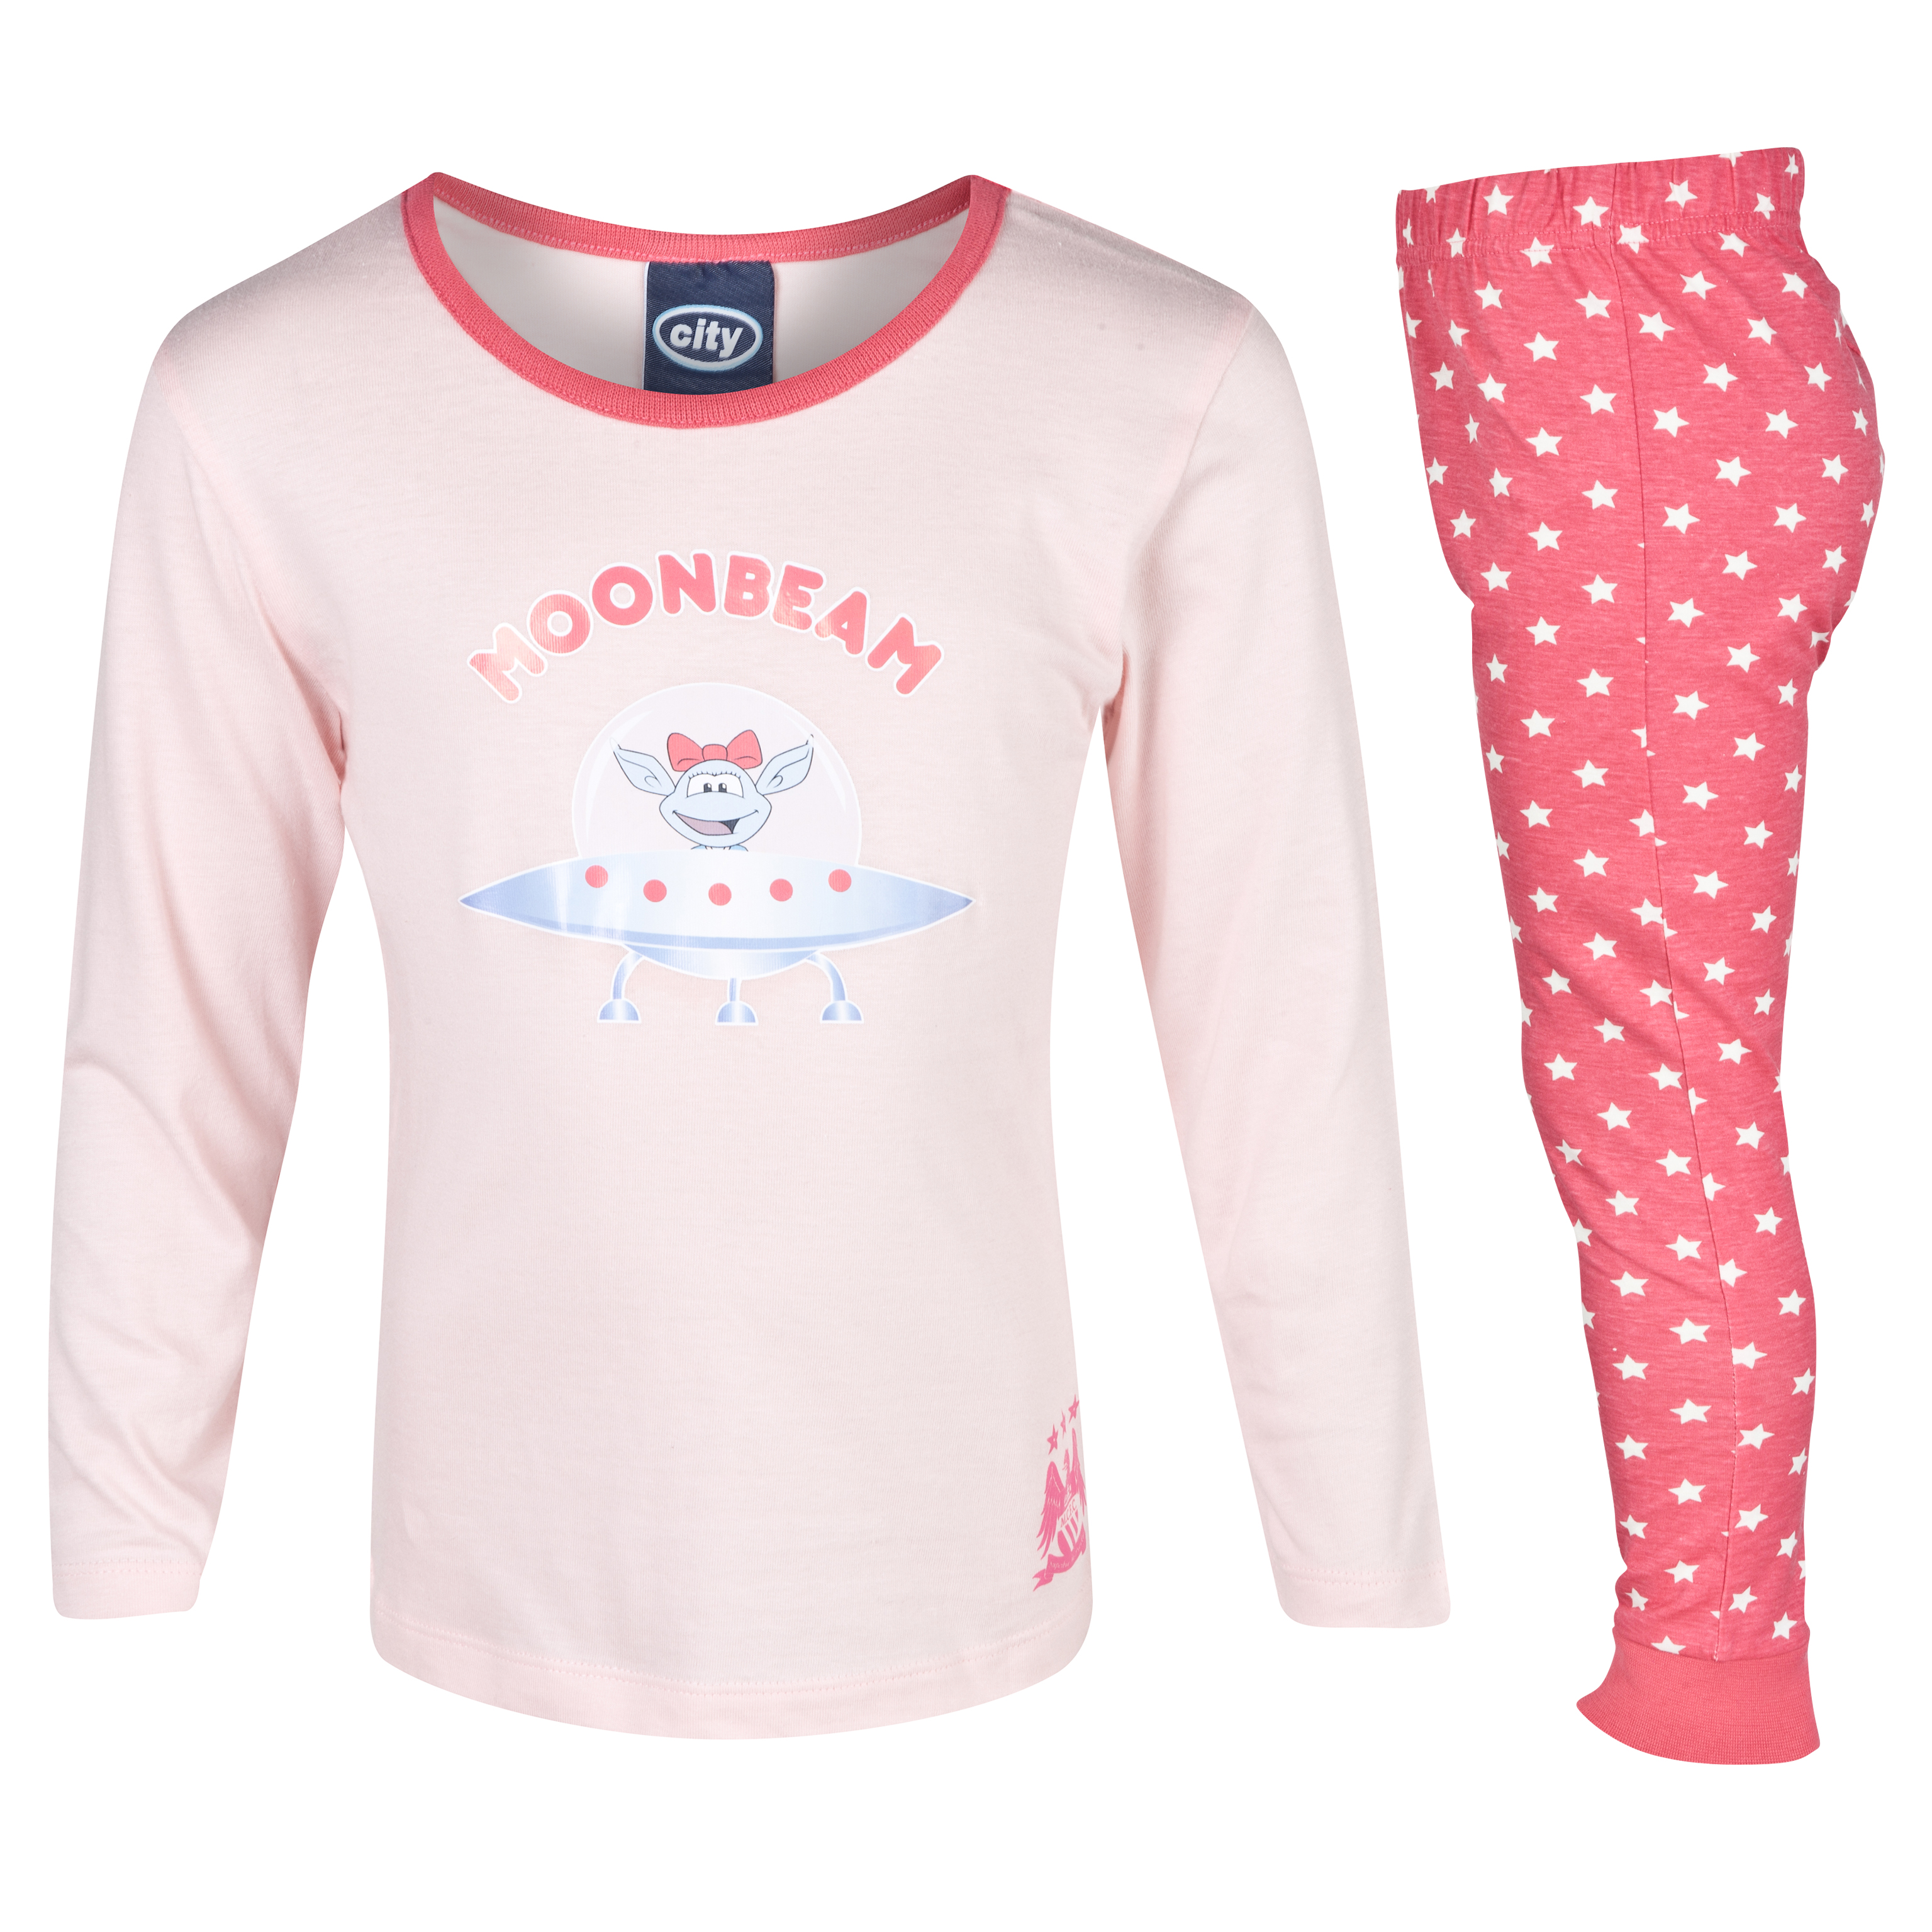 Manchester City Moonbeam Pyjamas Infant Girls Pink